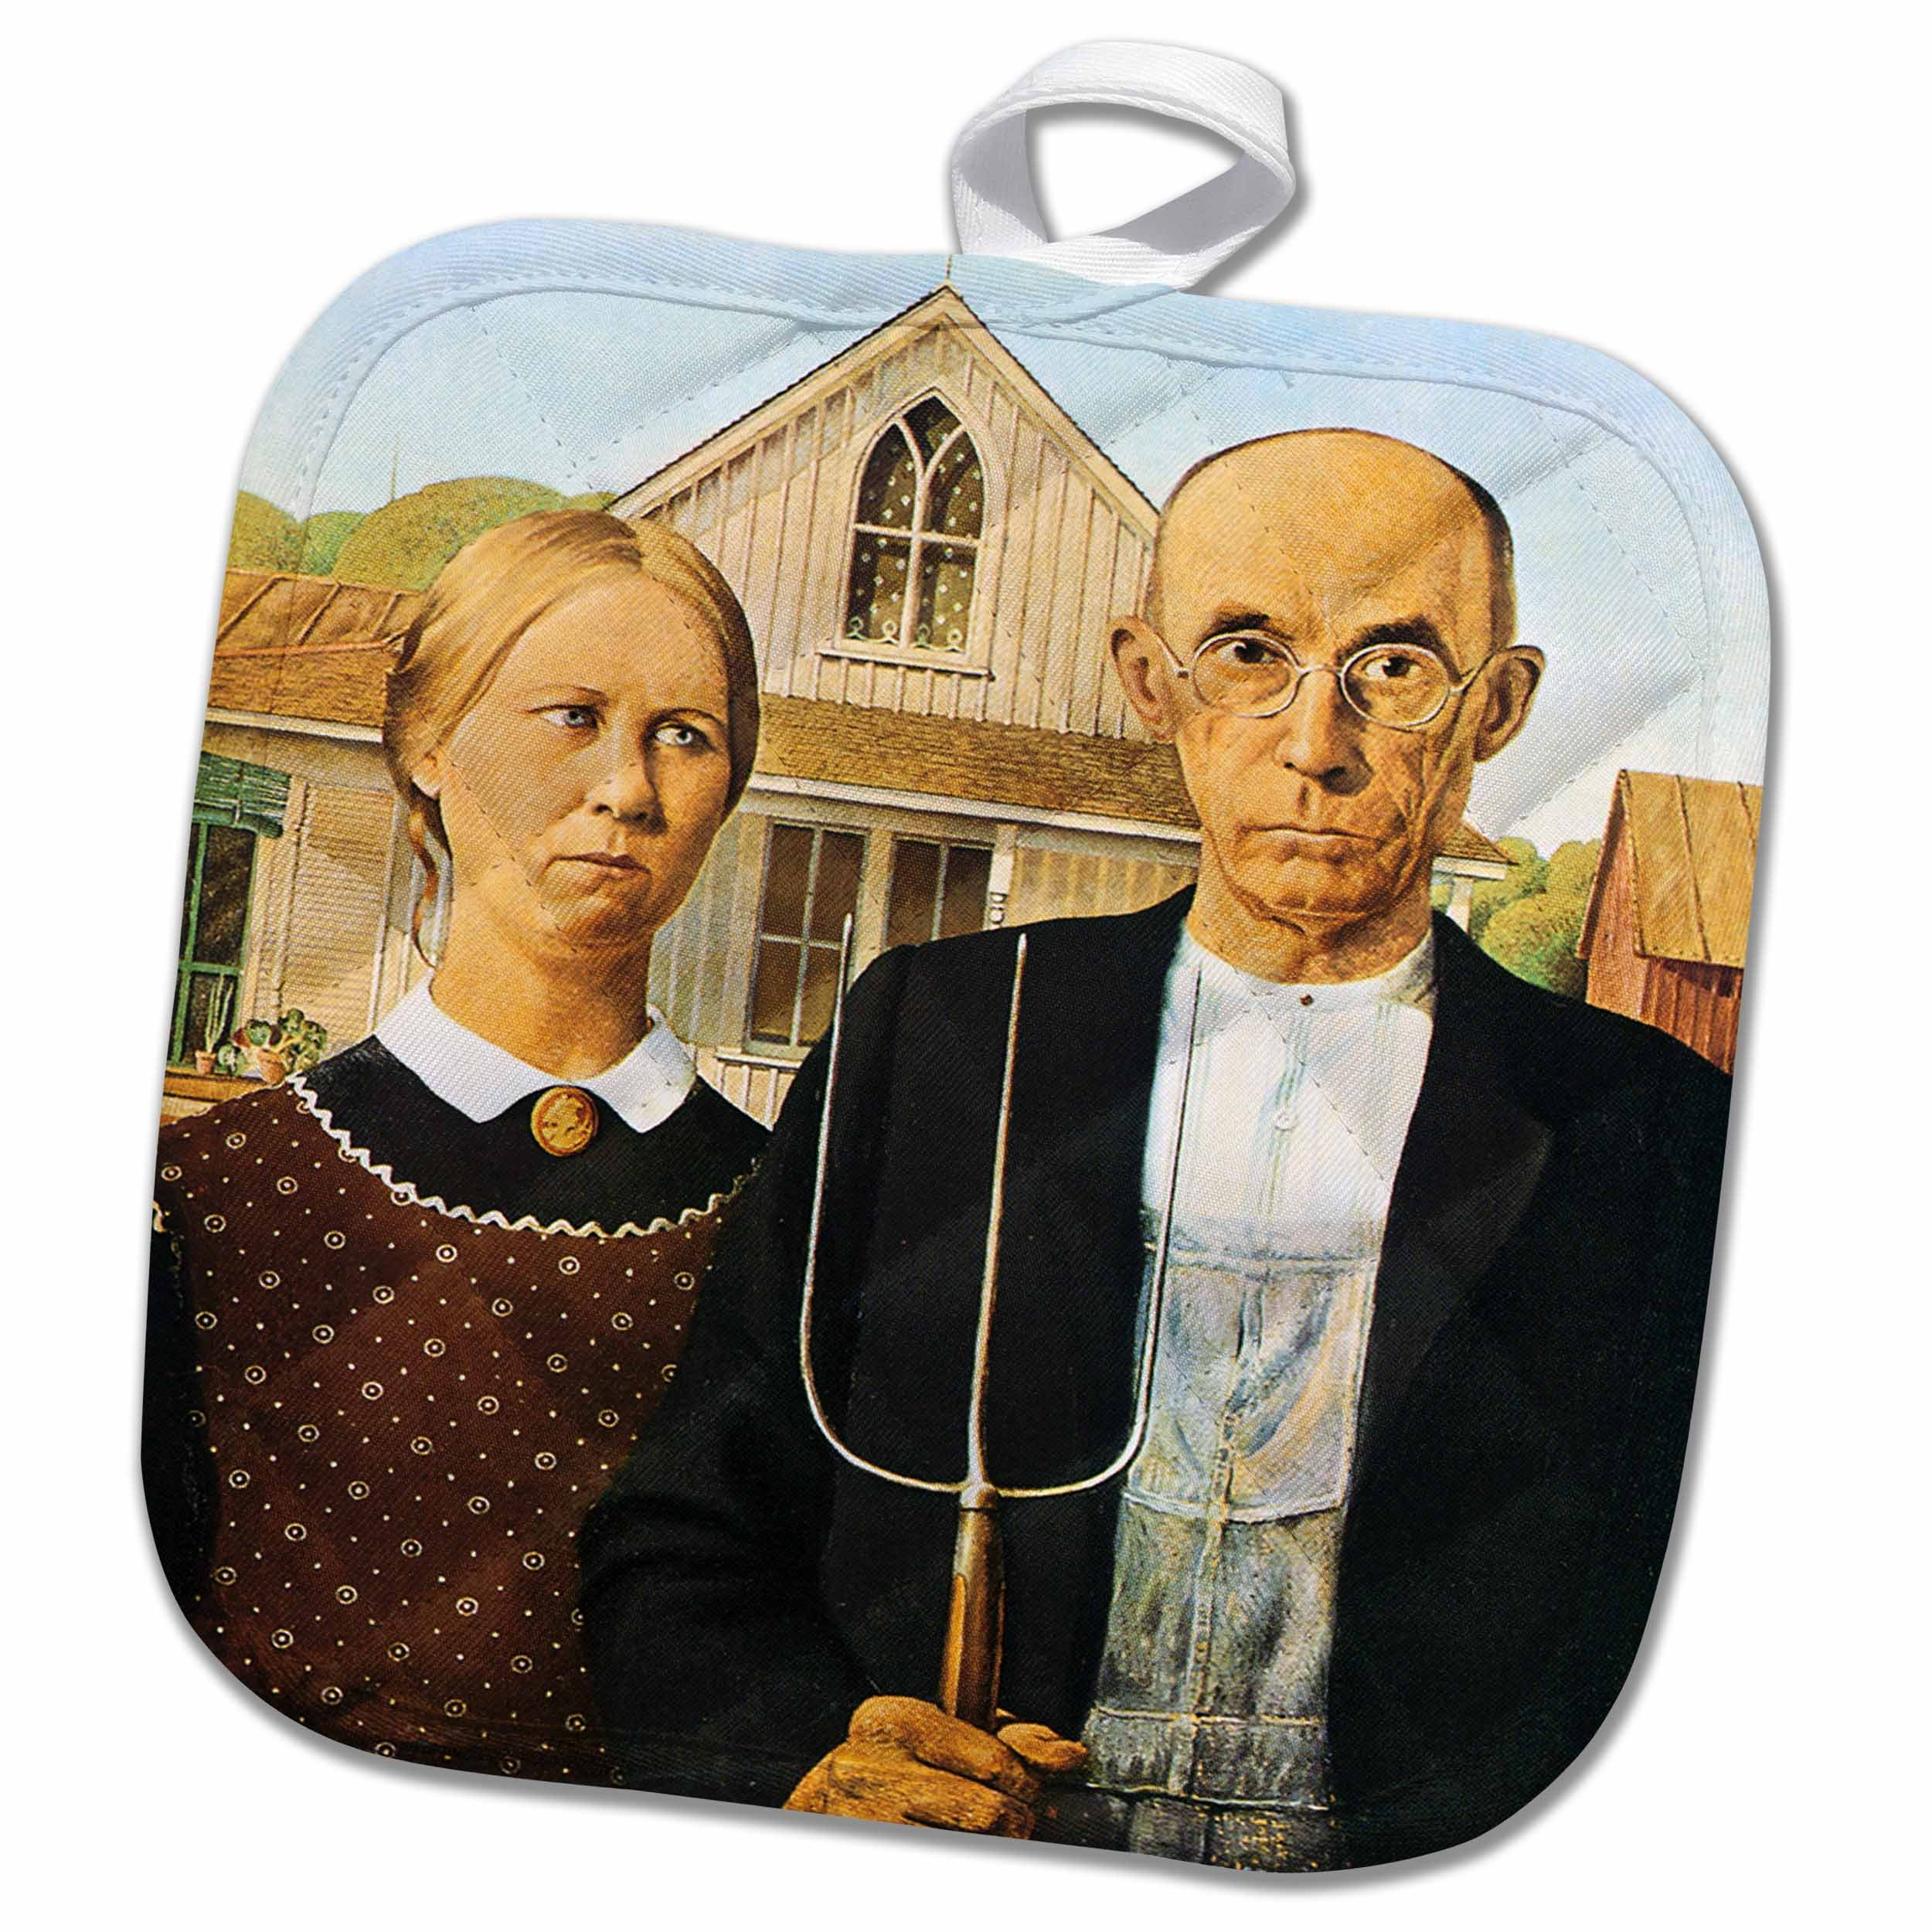 3D Rose American Gothic by Grant Wood Pot Holder, 8 x 8